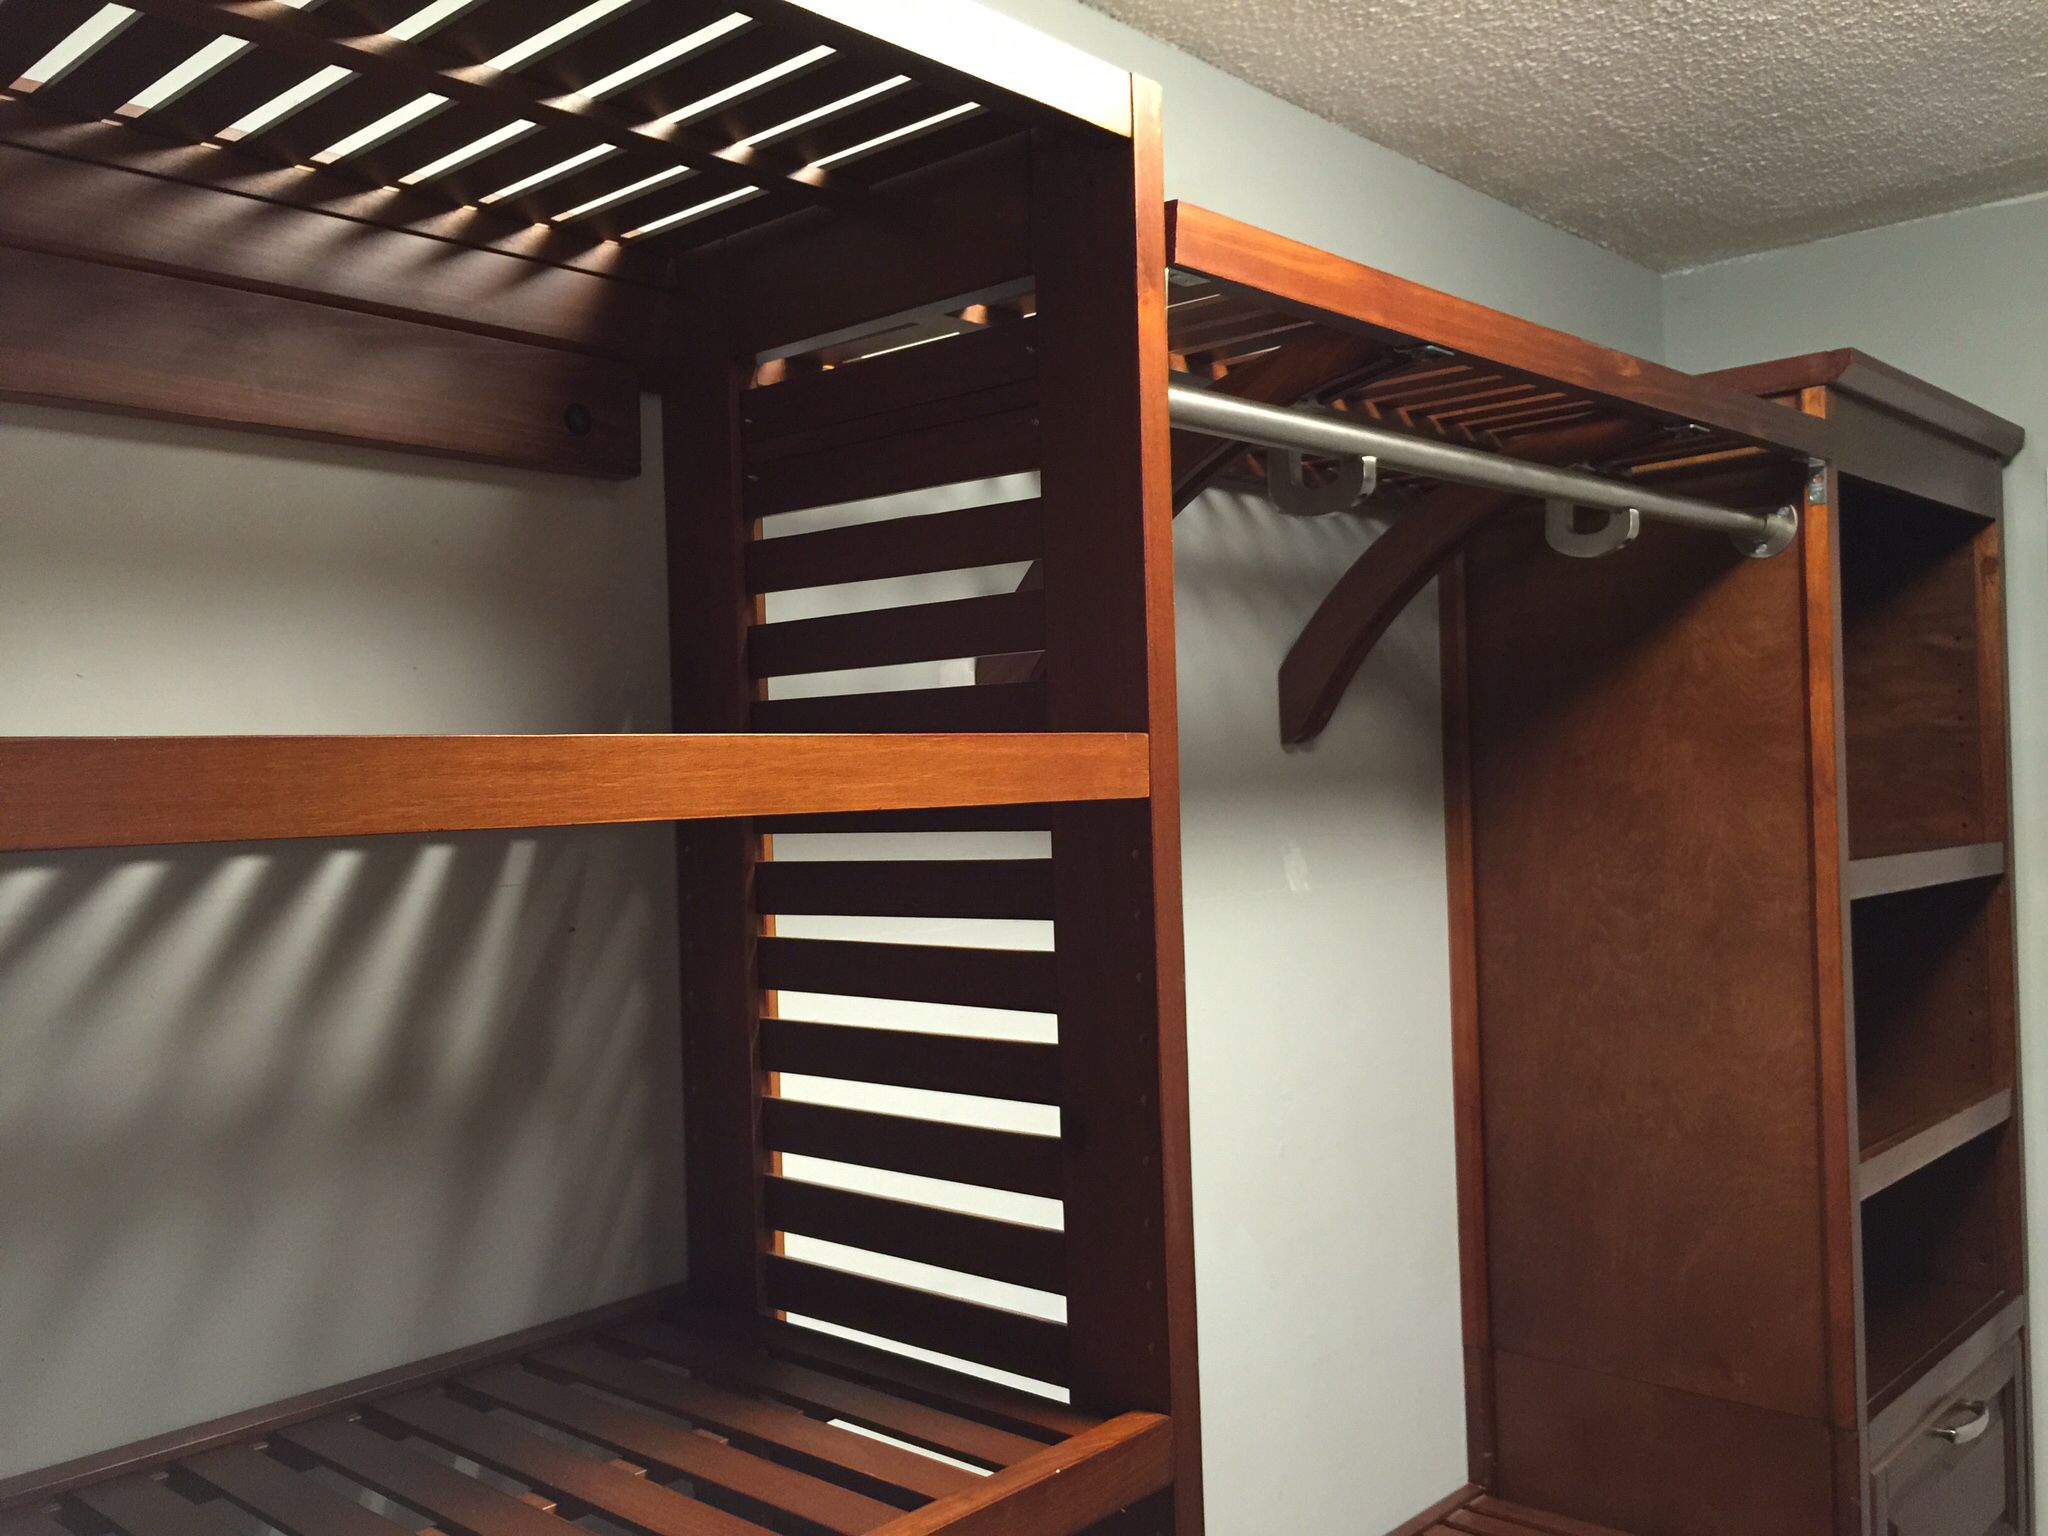 ideas units drawers depot clics shelf easy bedroom wardrobe the planner allen kmart expandable seville rack walmart wire bins storage costco systems wood hack shelving clothes roth ikea reorganization closet home design containers organizer for organizers closets